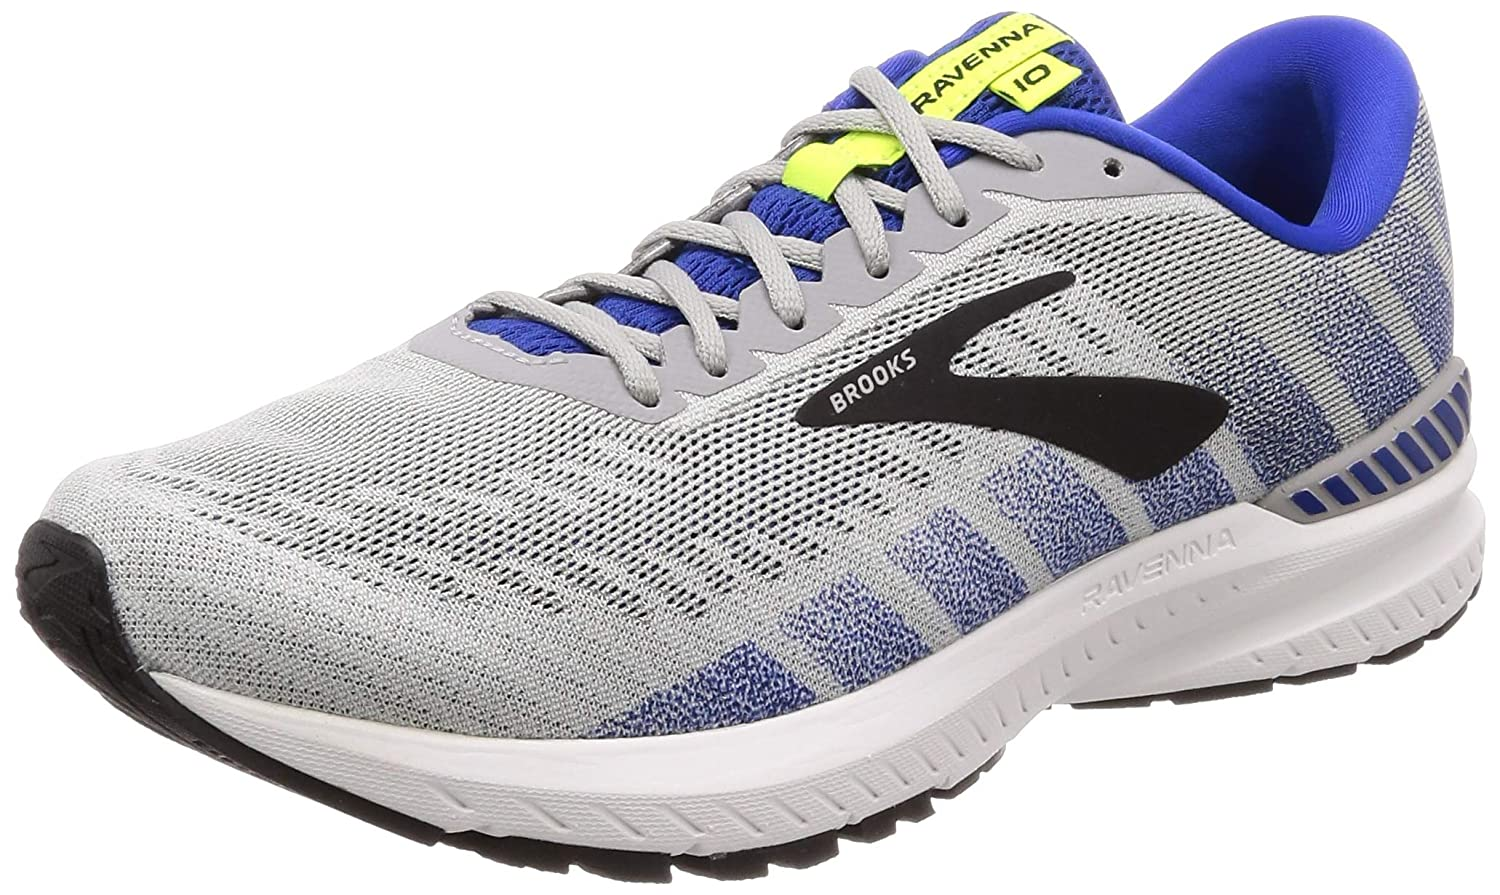 6430c405c6b25 Brooks Men s Ravenna 10 Running Shoes  Amazon.co.uk  Shoes   Bags